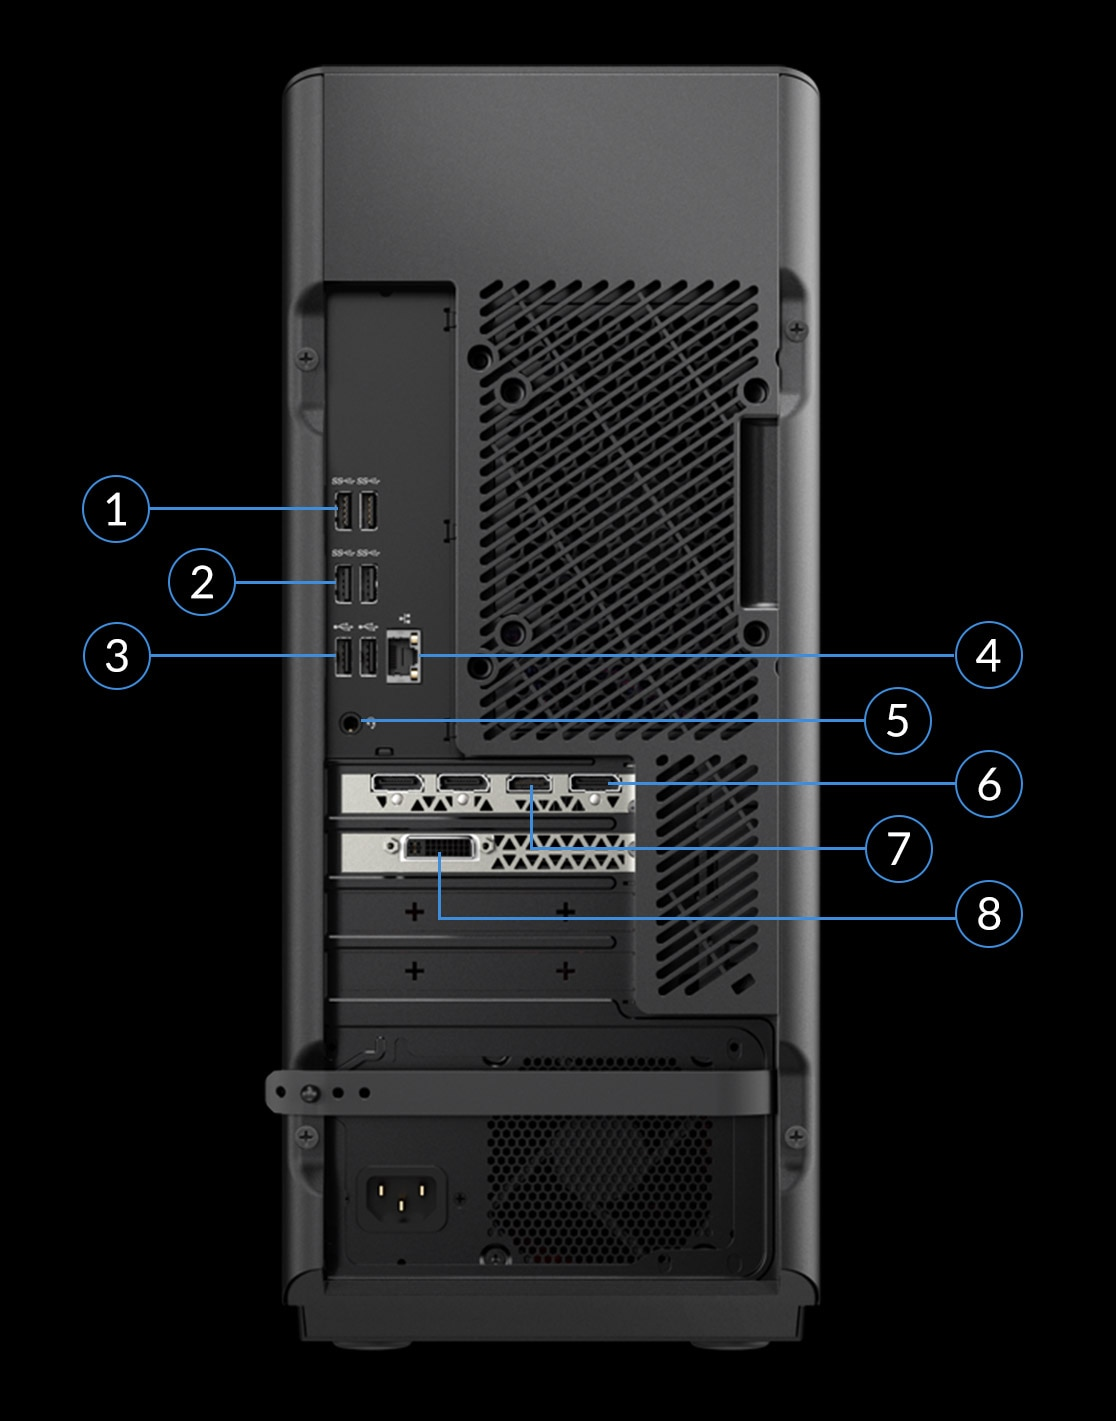 Lenovo Legion T730 Tower rear view with numbers for port identification.